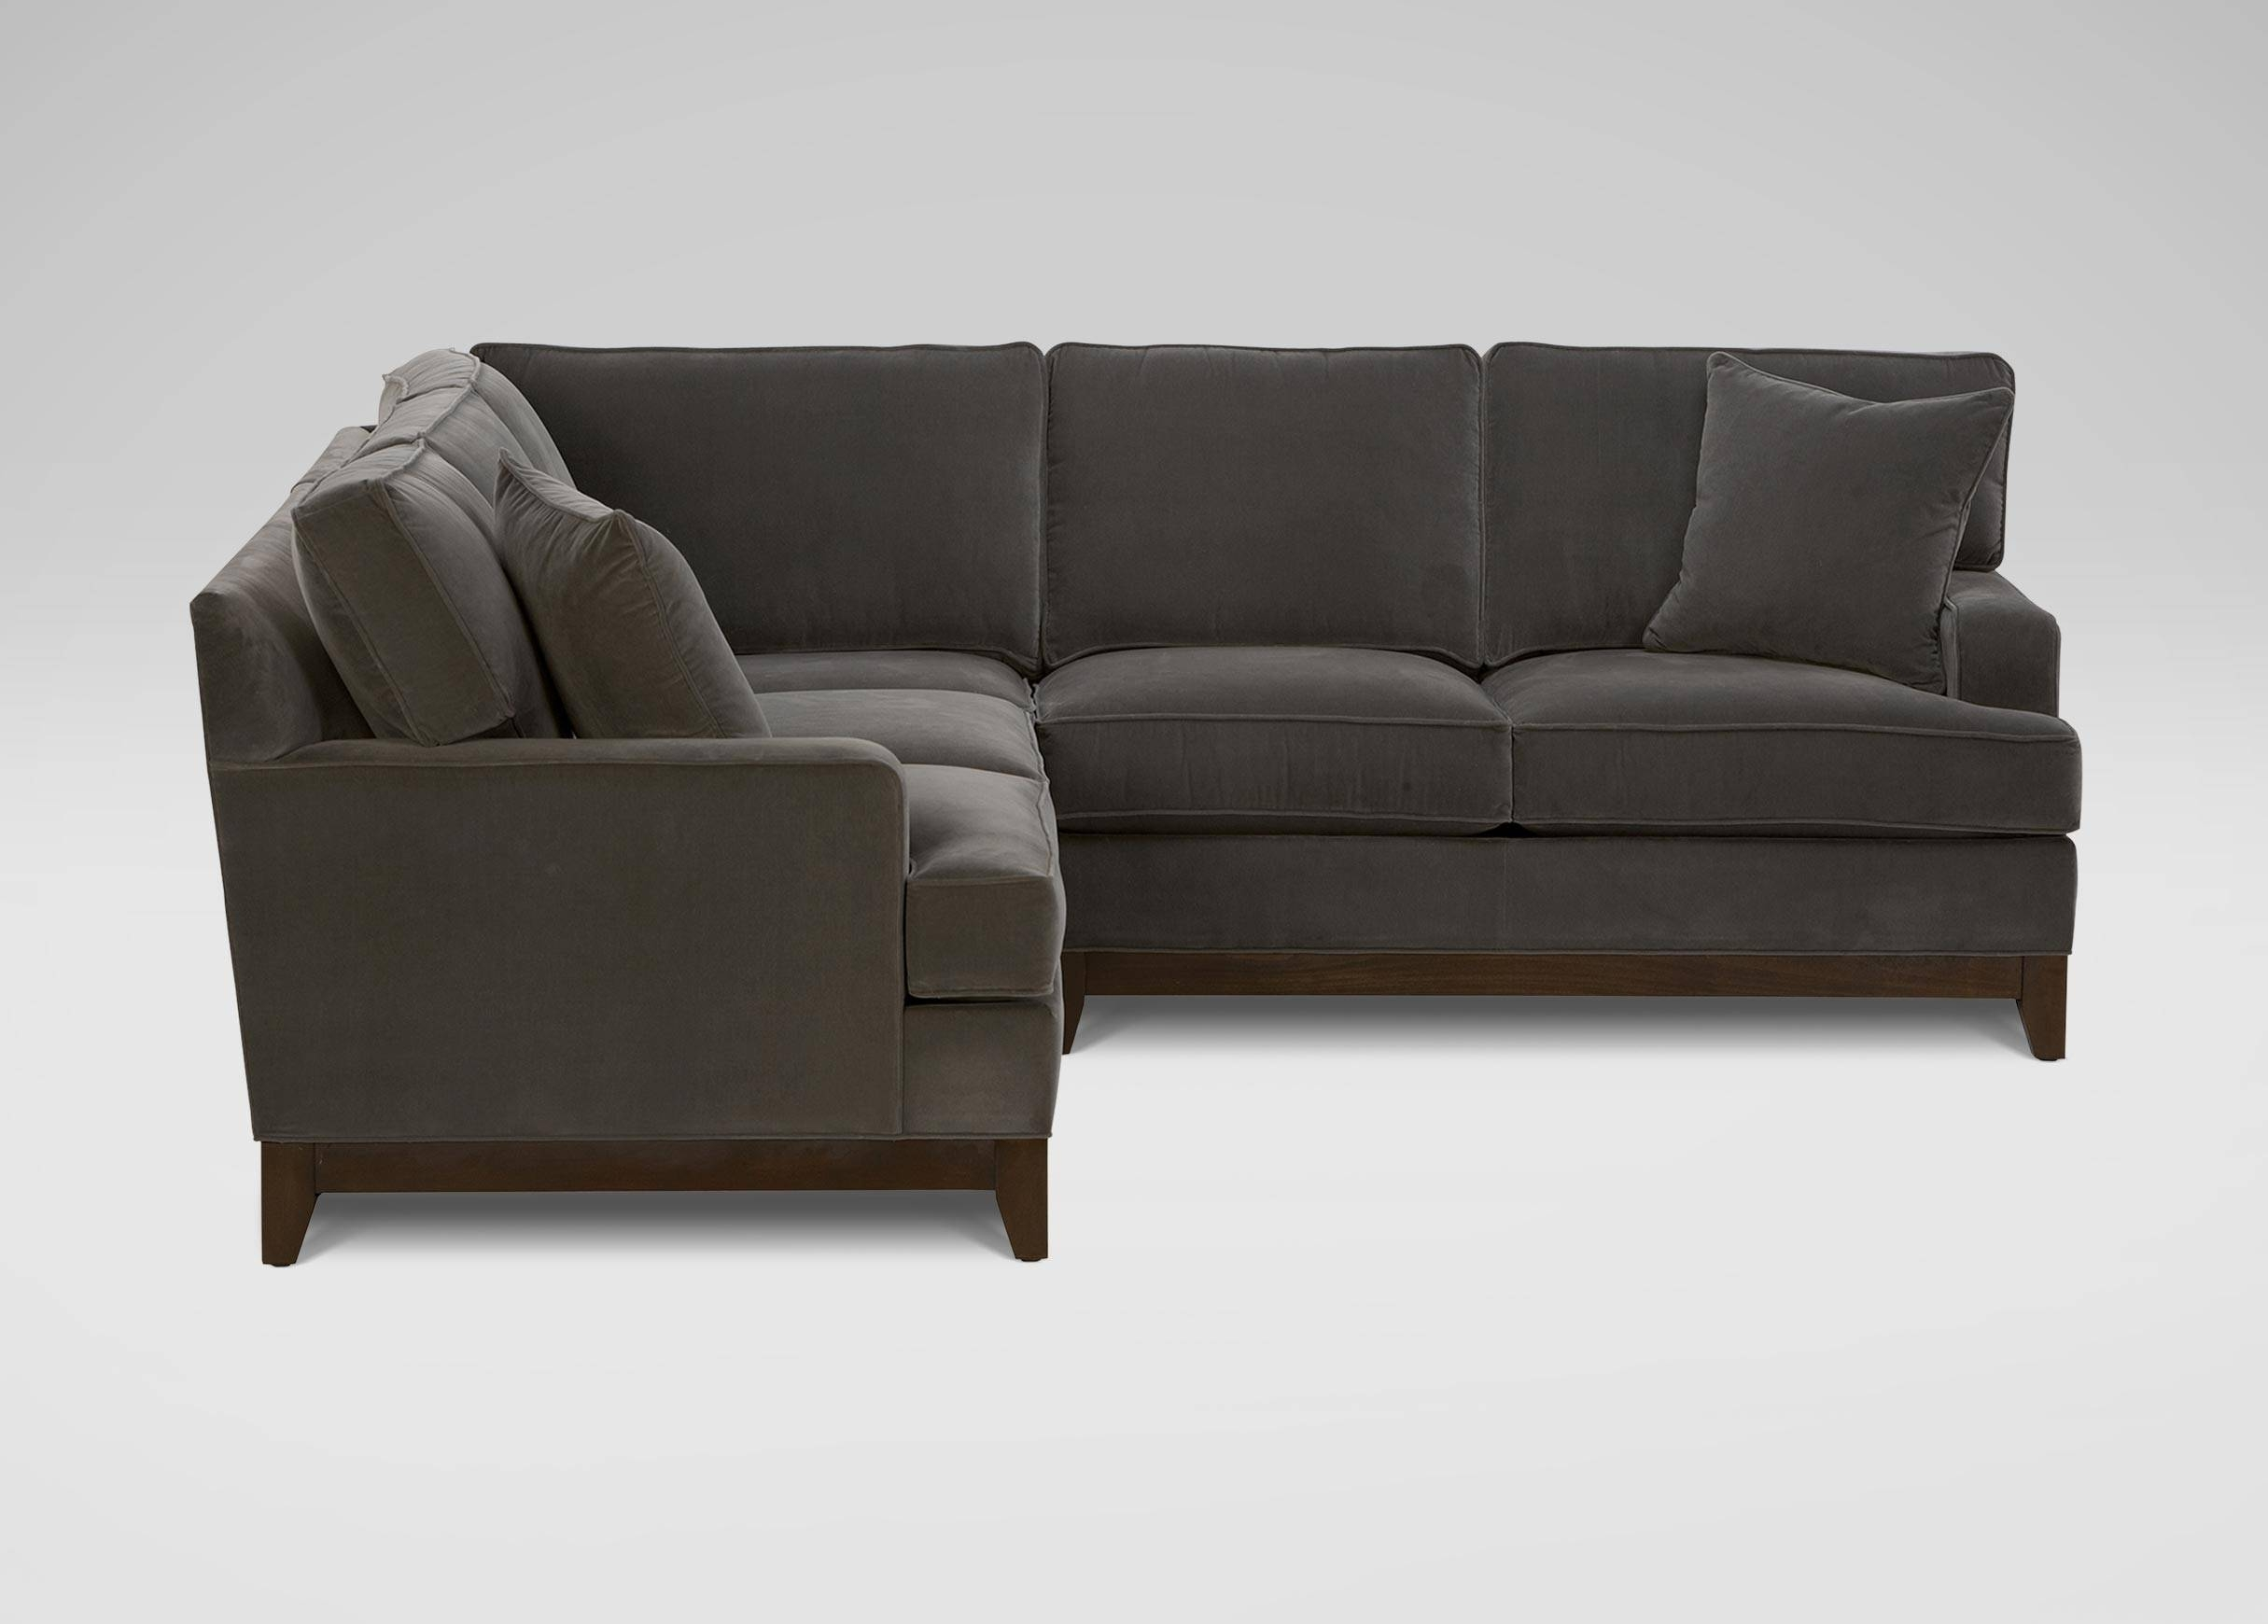 Arcata Sectional | Sectionals Within Ethan Allen Sectional Sofas (View 12 of 15)